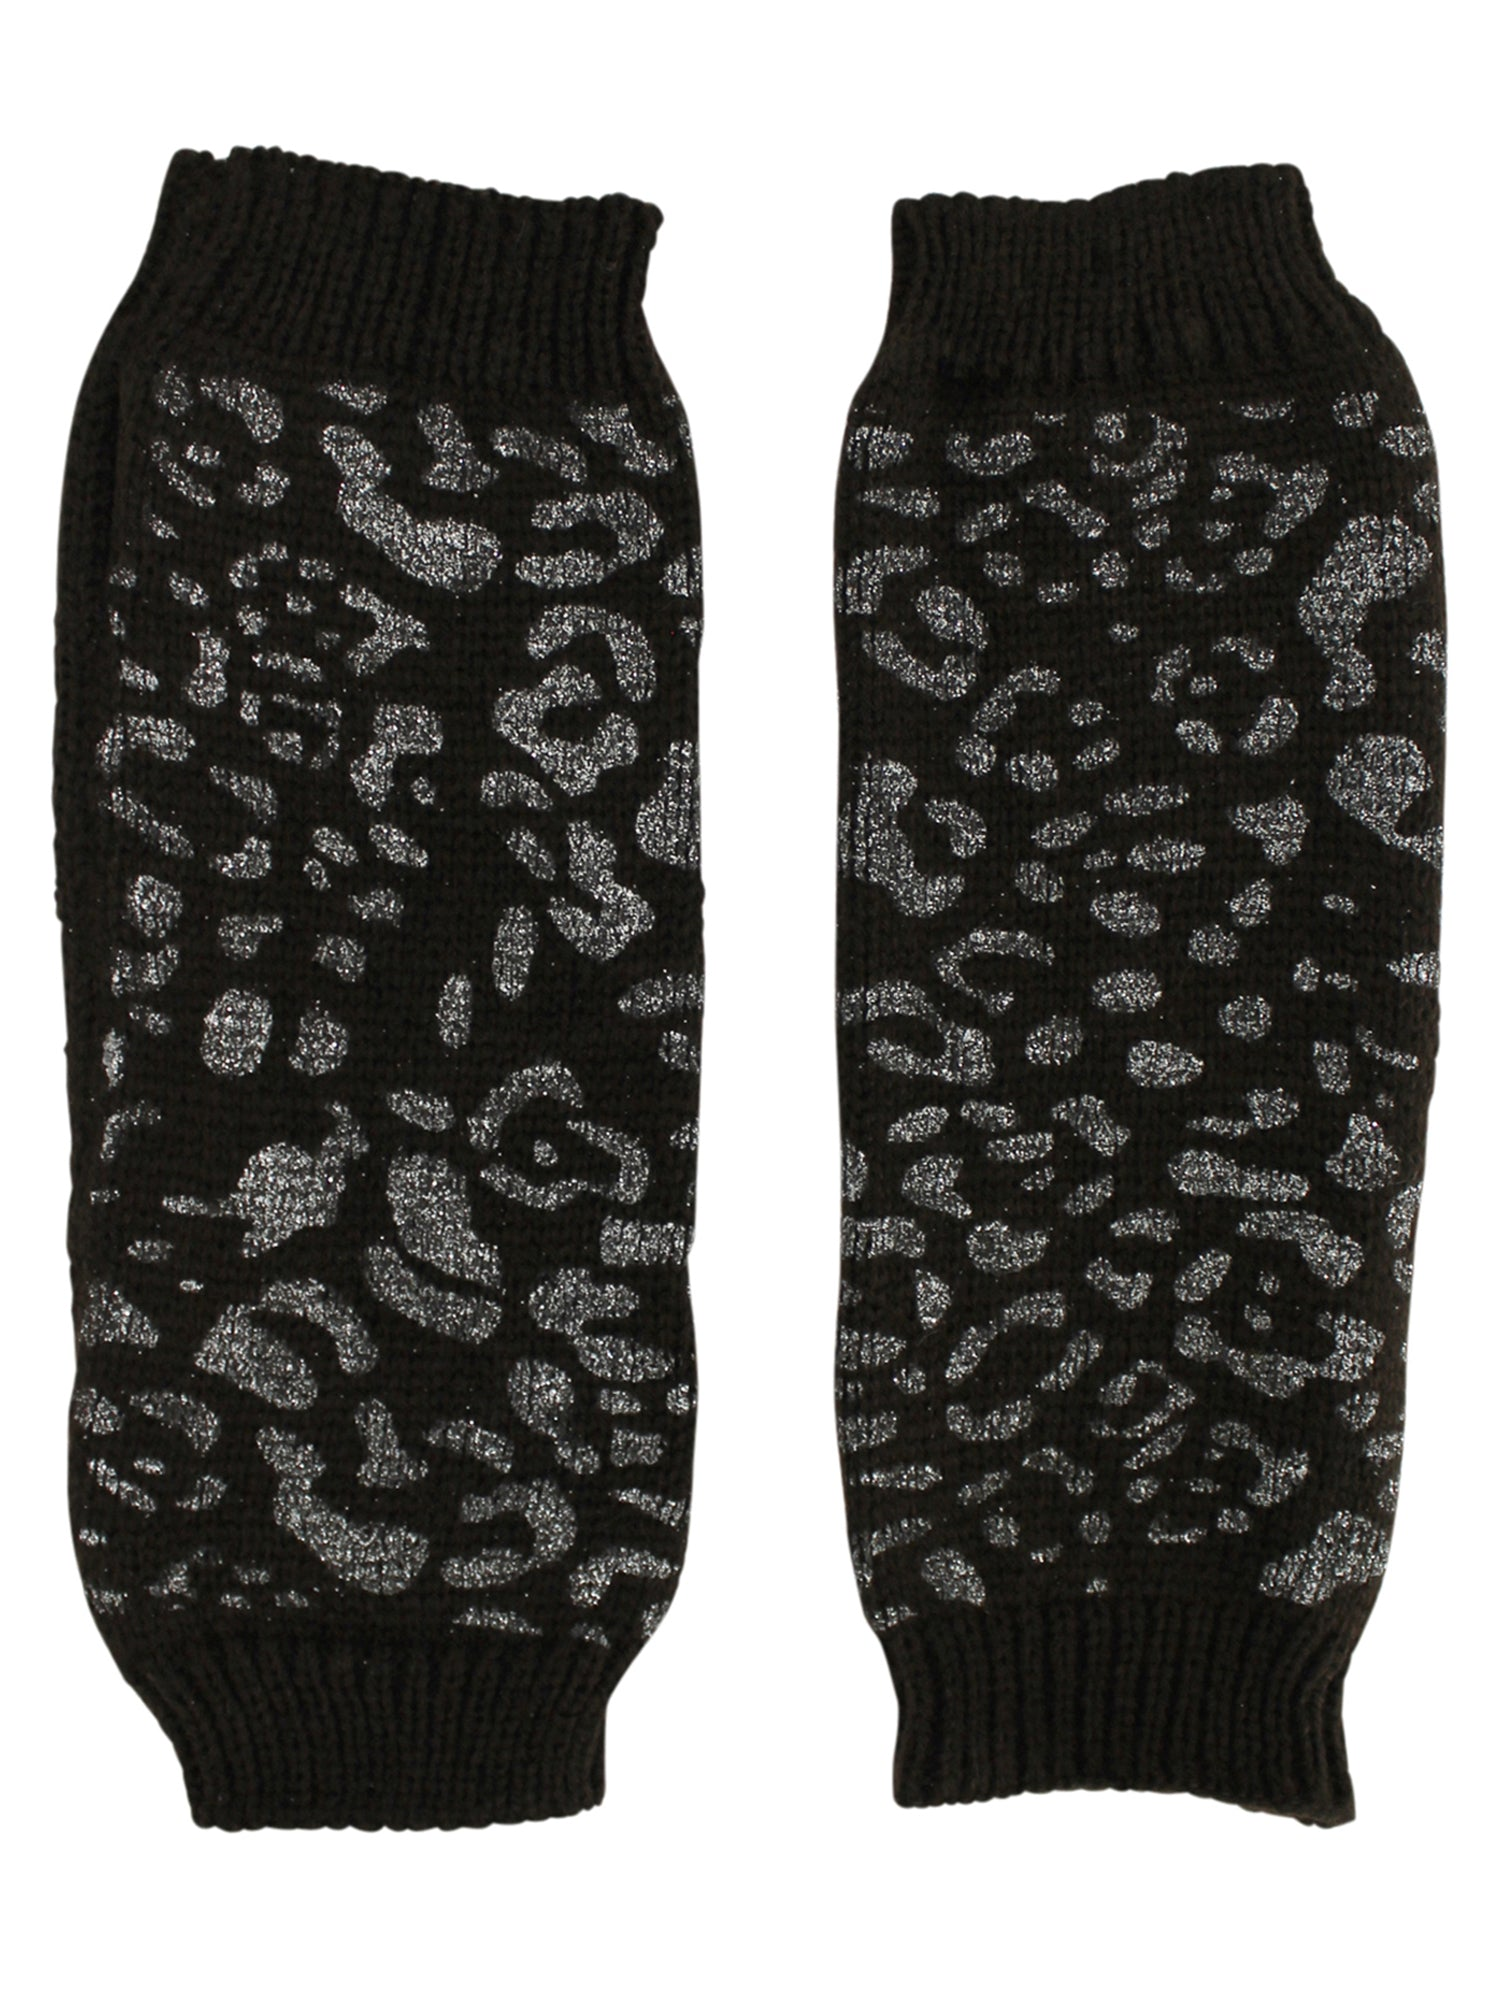 Metallic Leopard Fingerless Arm Warmer Gloves